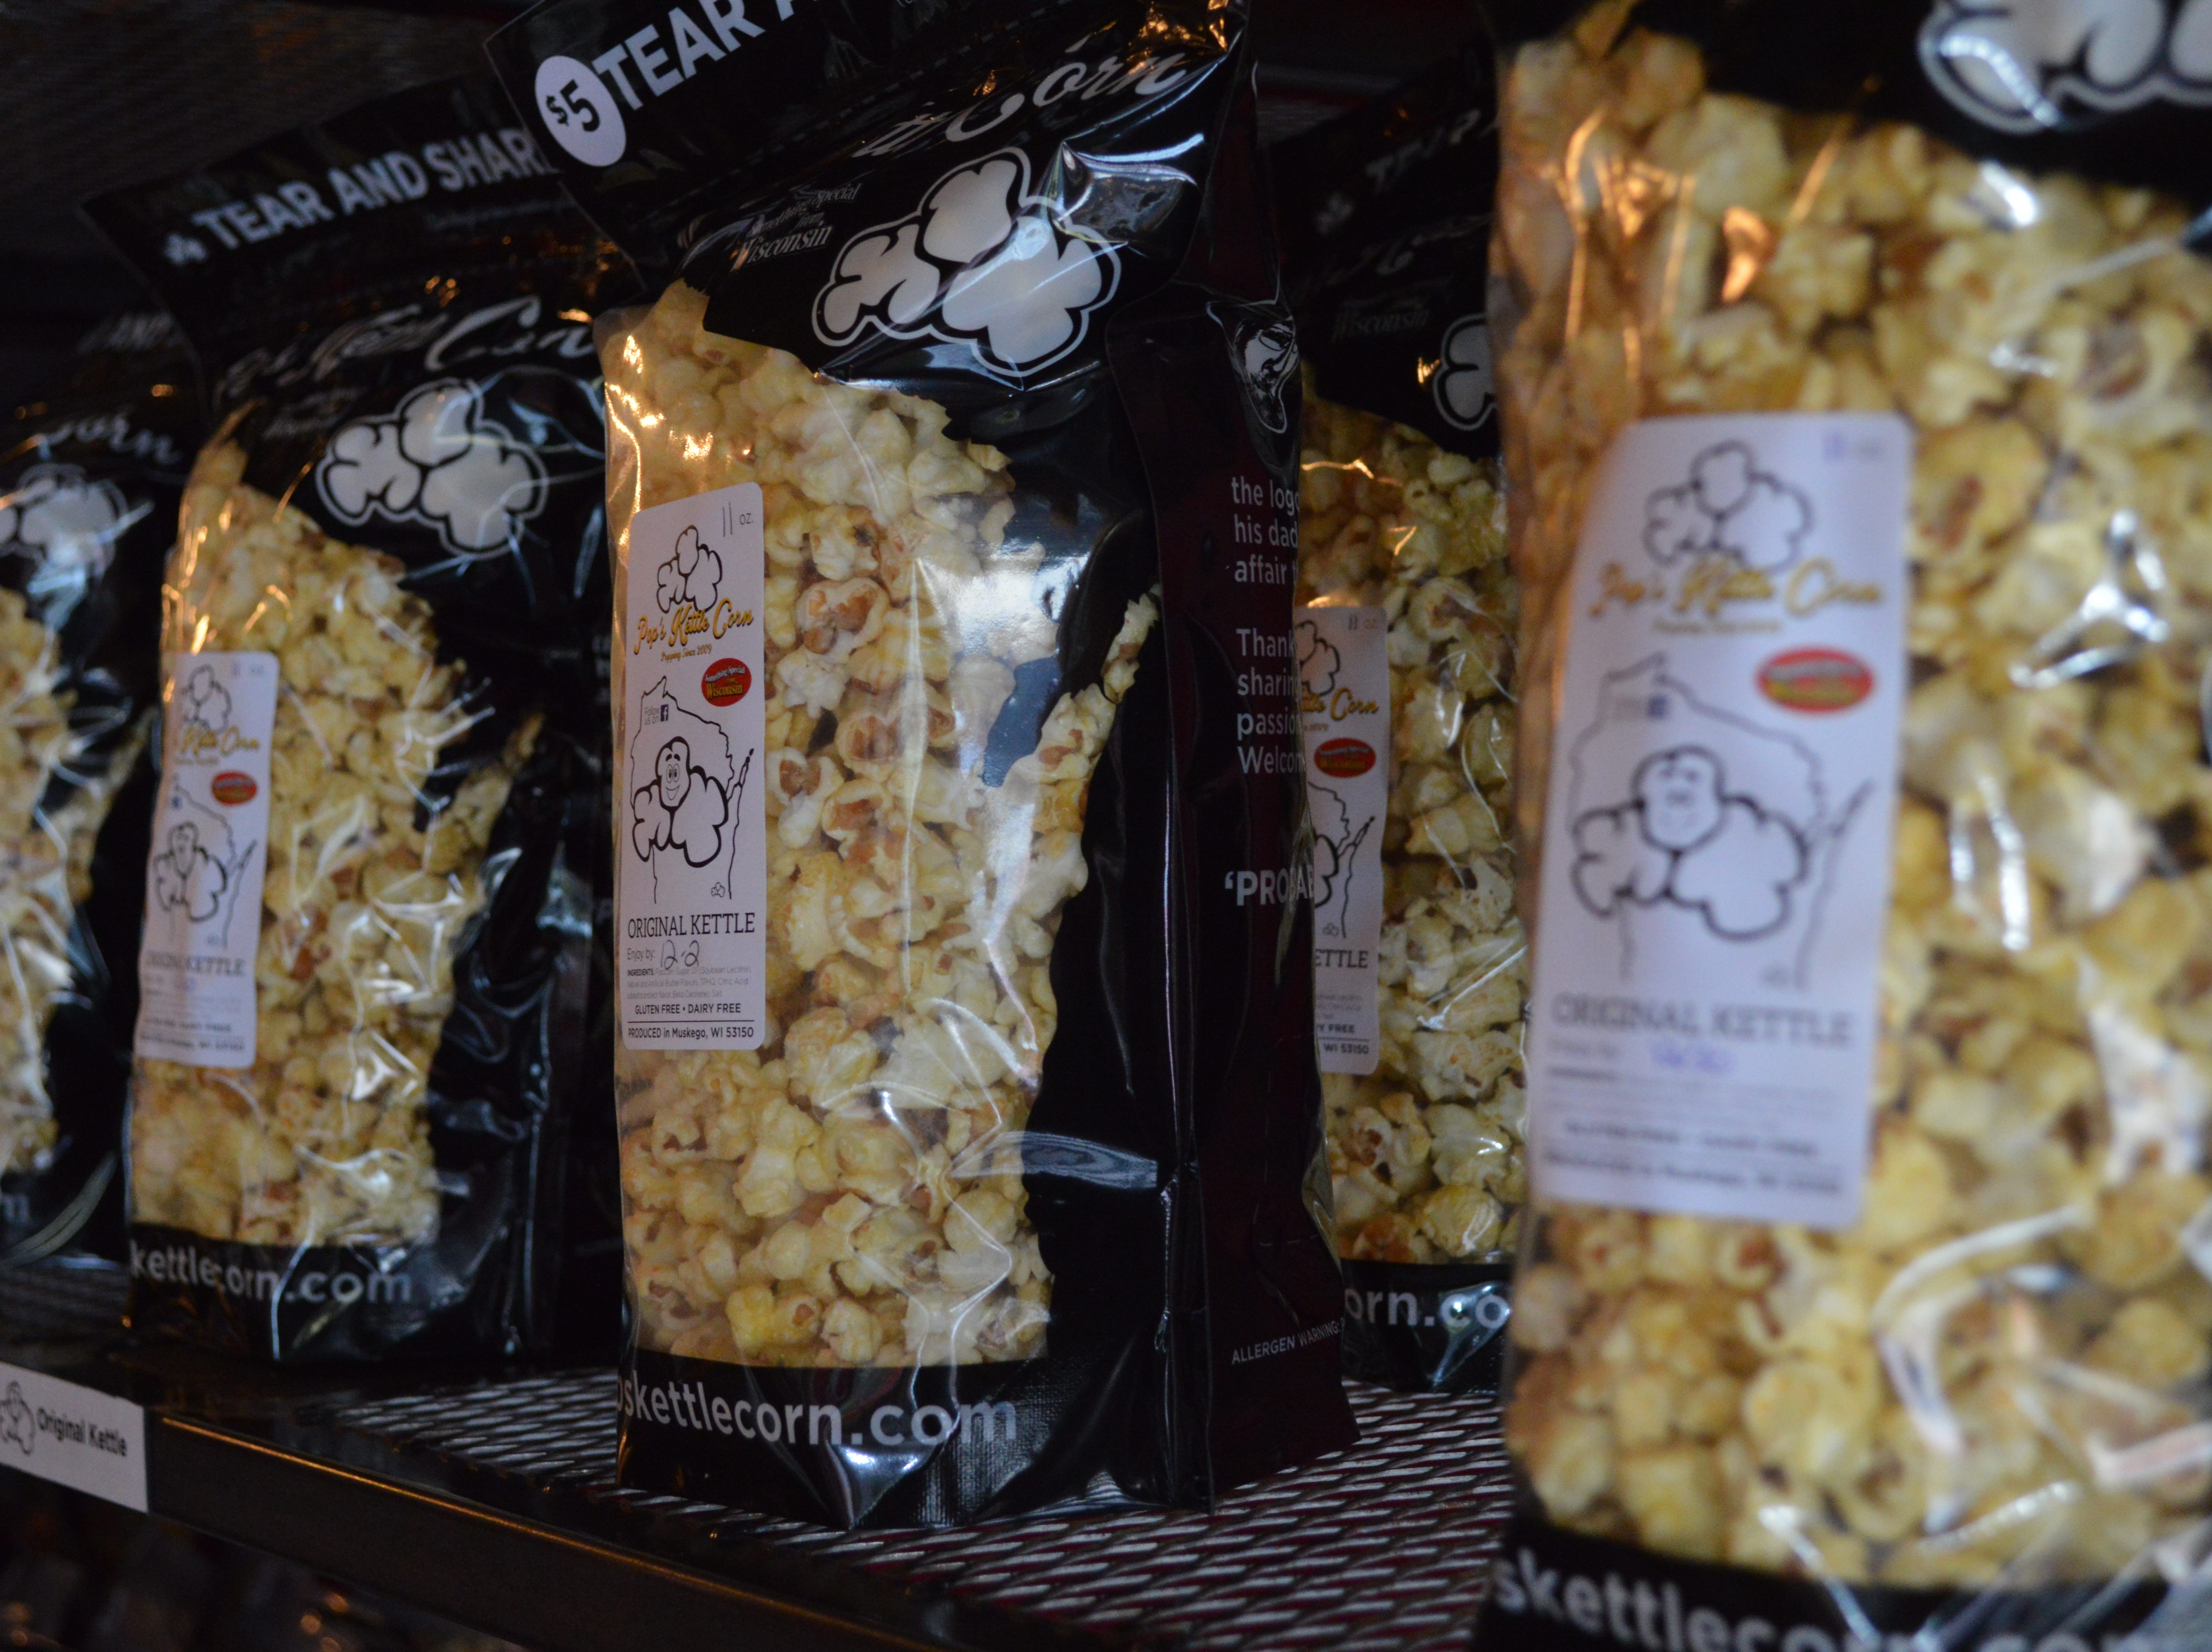 Pop's Kettle Corn was founded in 2009 by Mark Knudsen's parents, Richard and Terri.